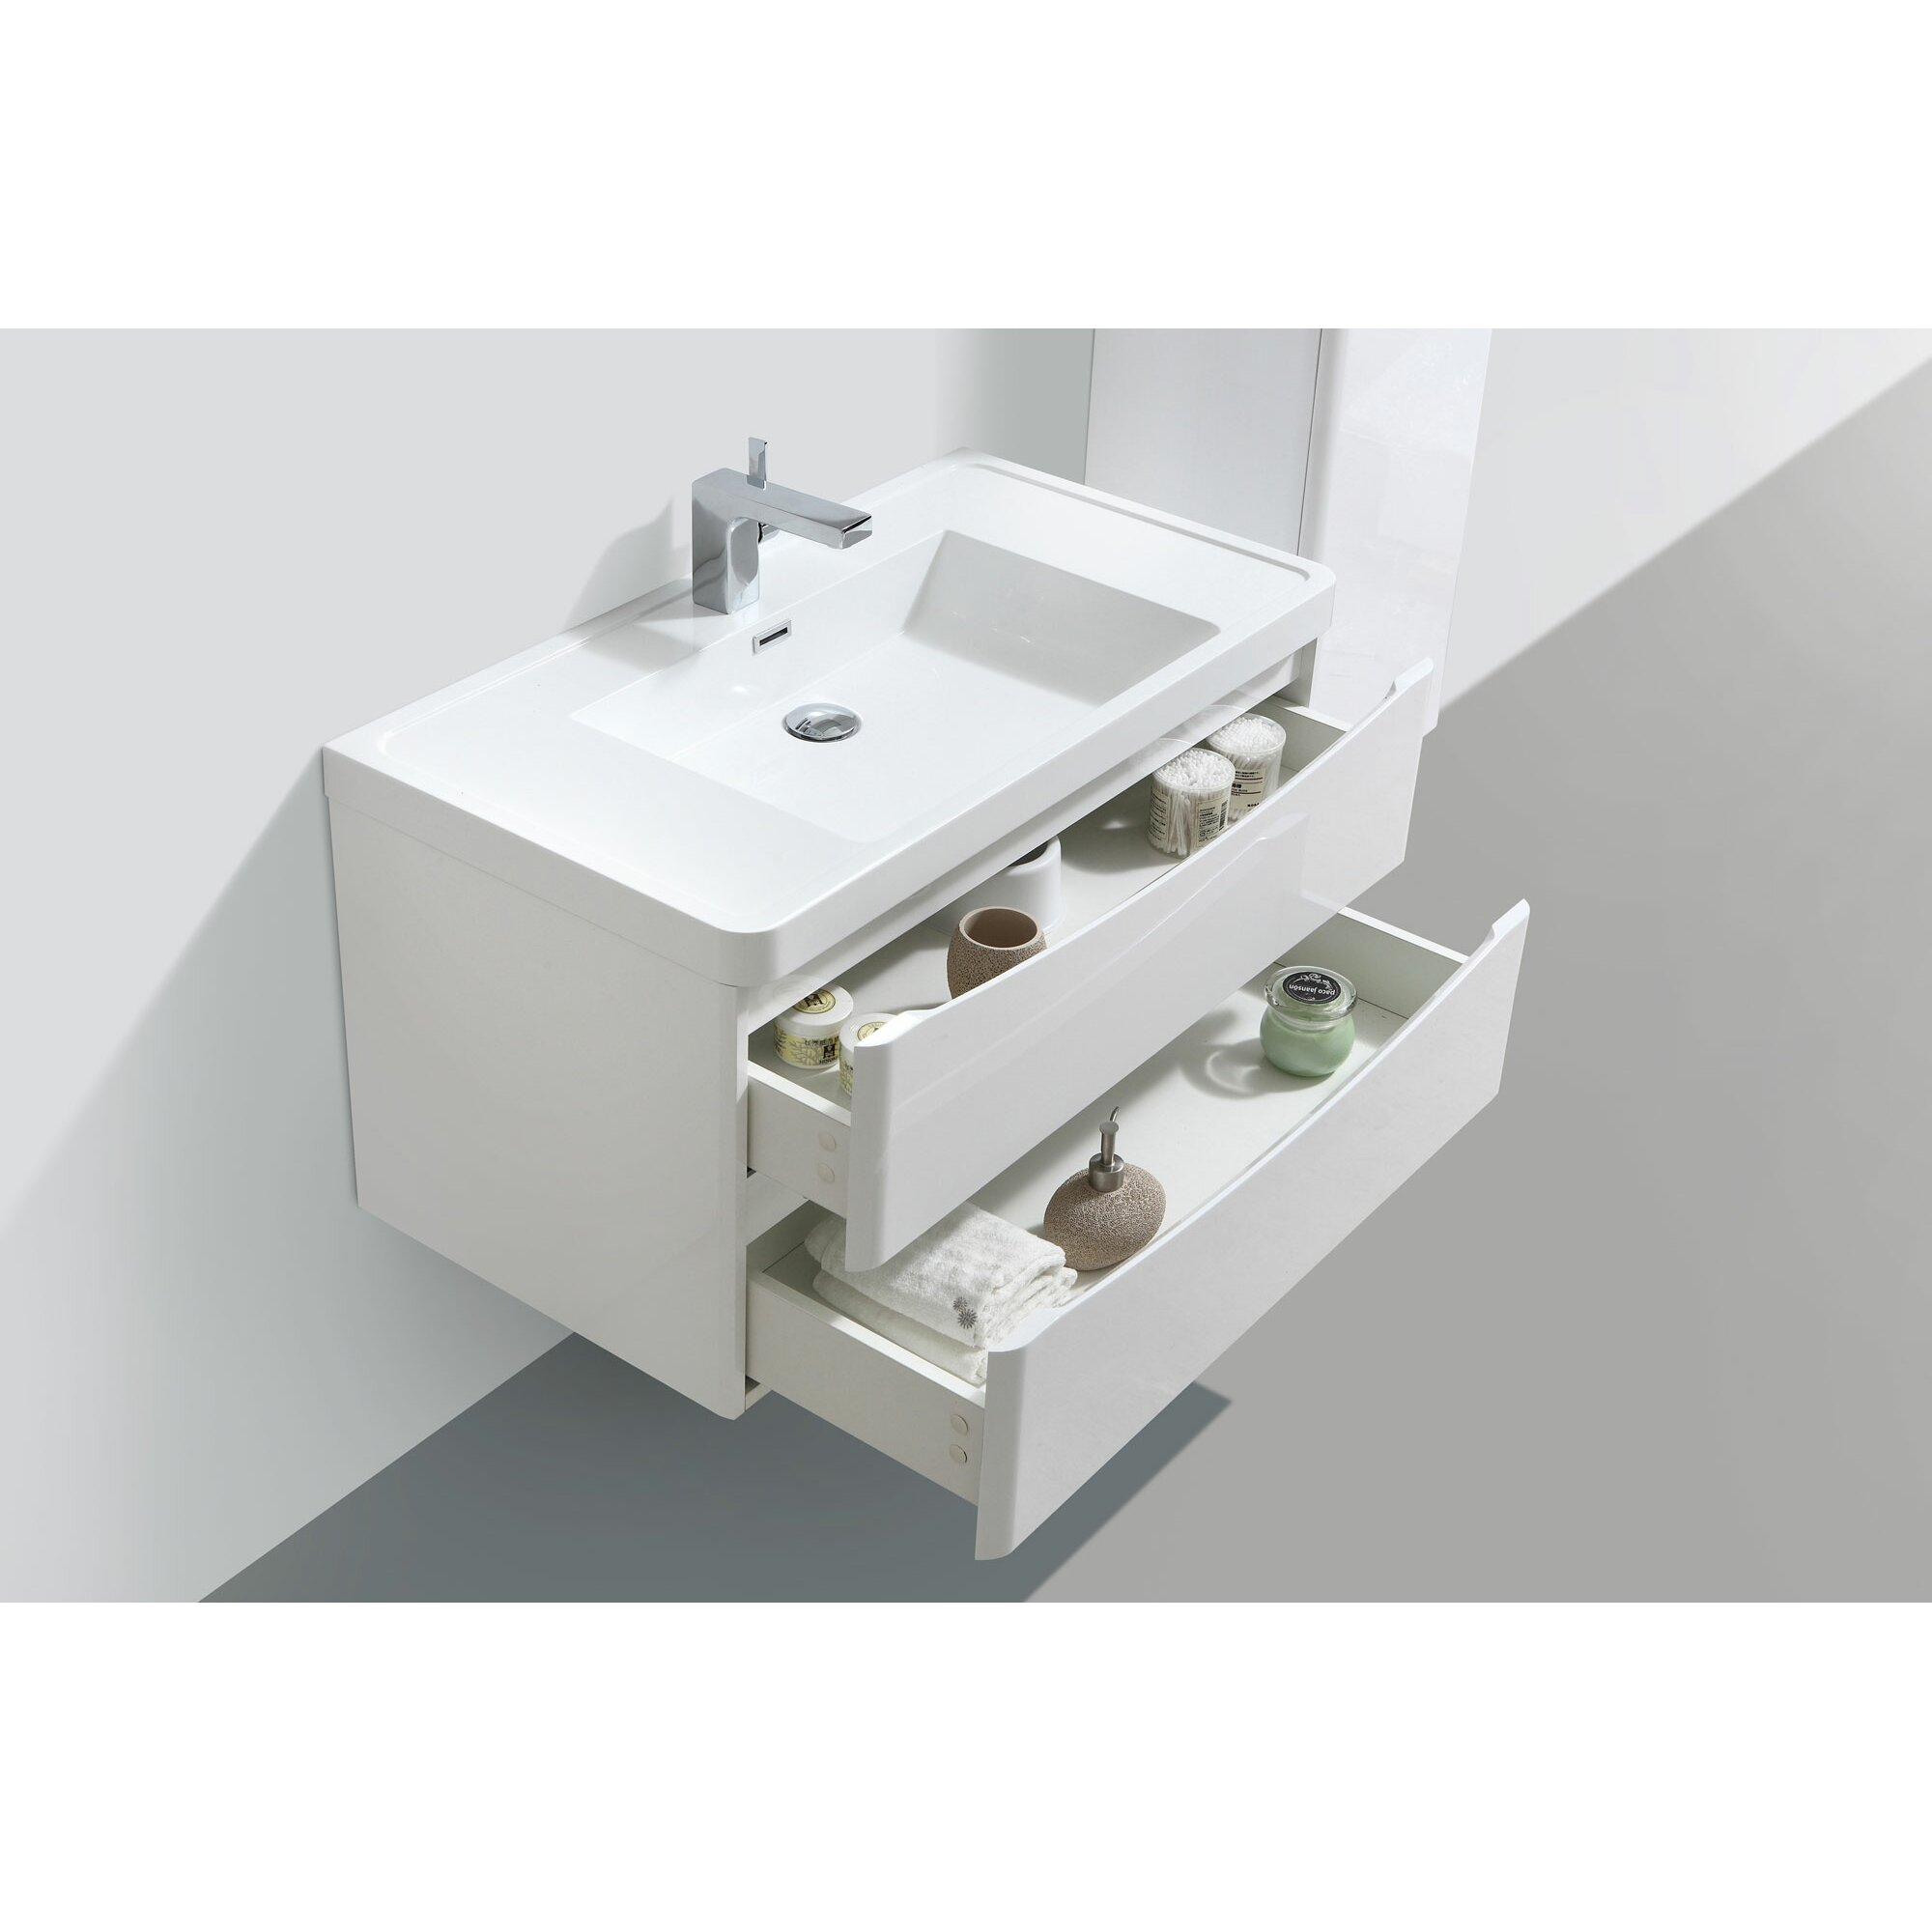 Belfry mensa 90cm wall mounted vanity unit with storage - Wall mounted bathroom storage units ...